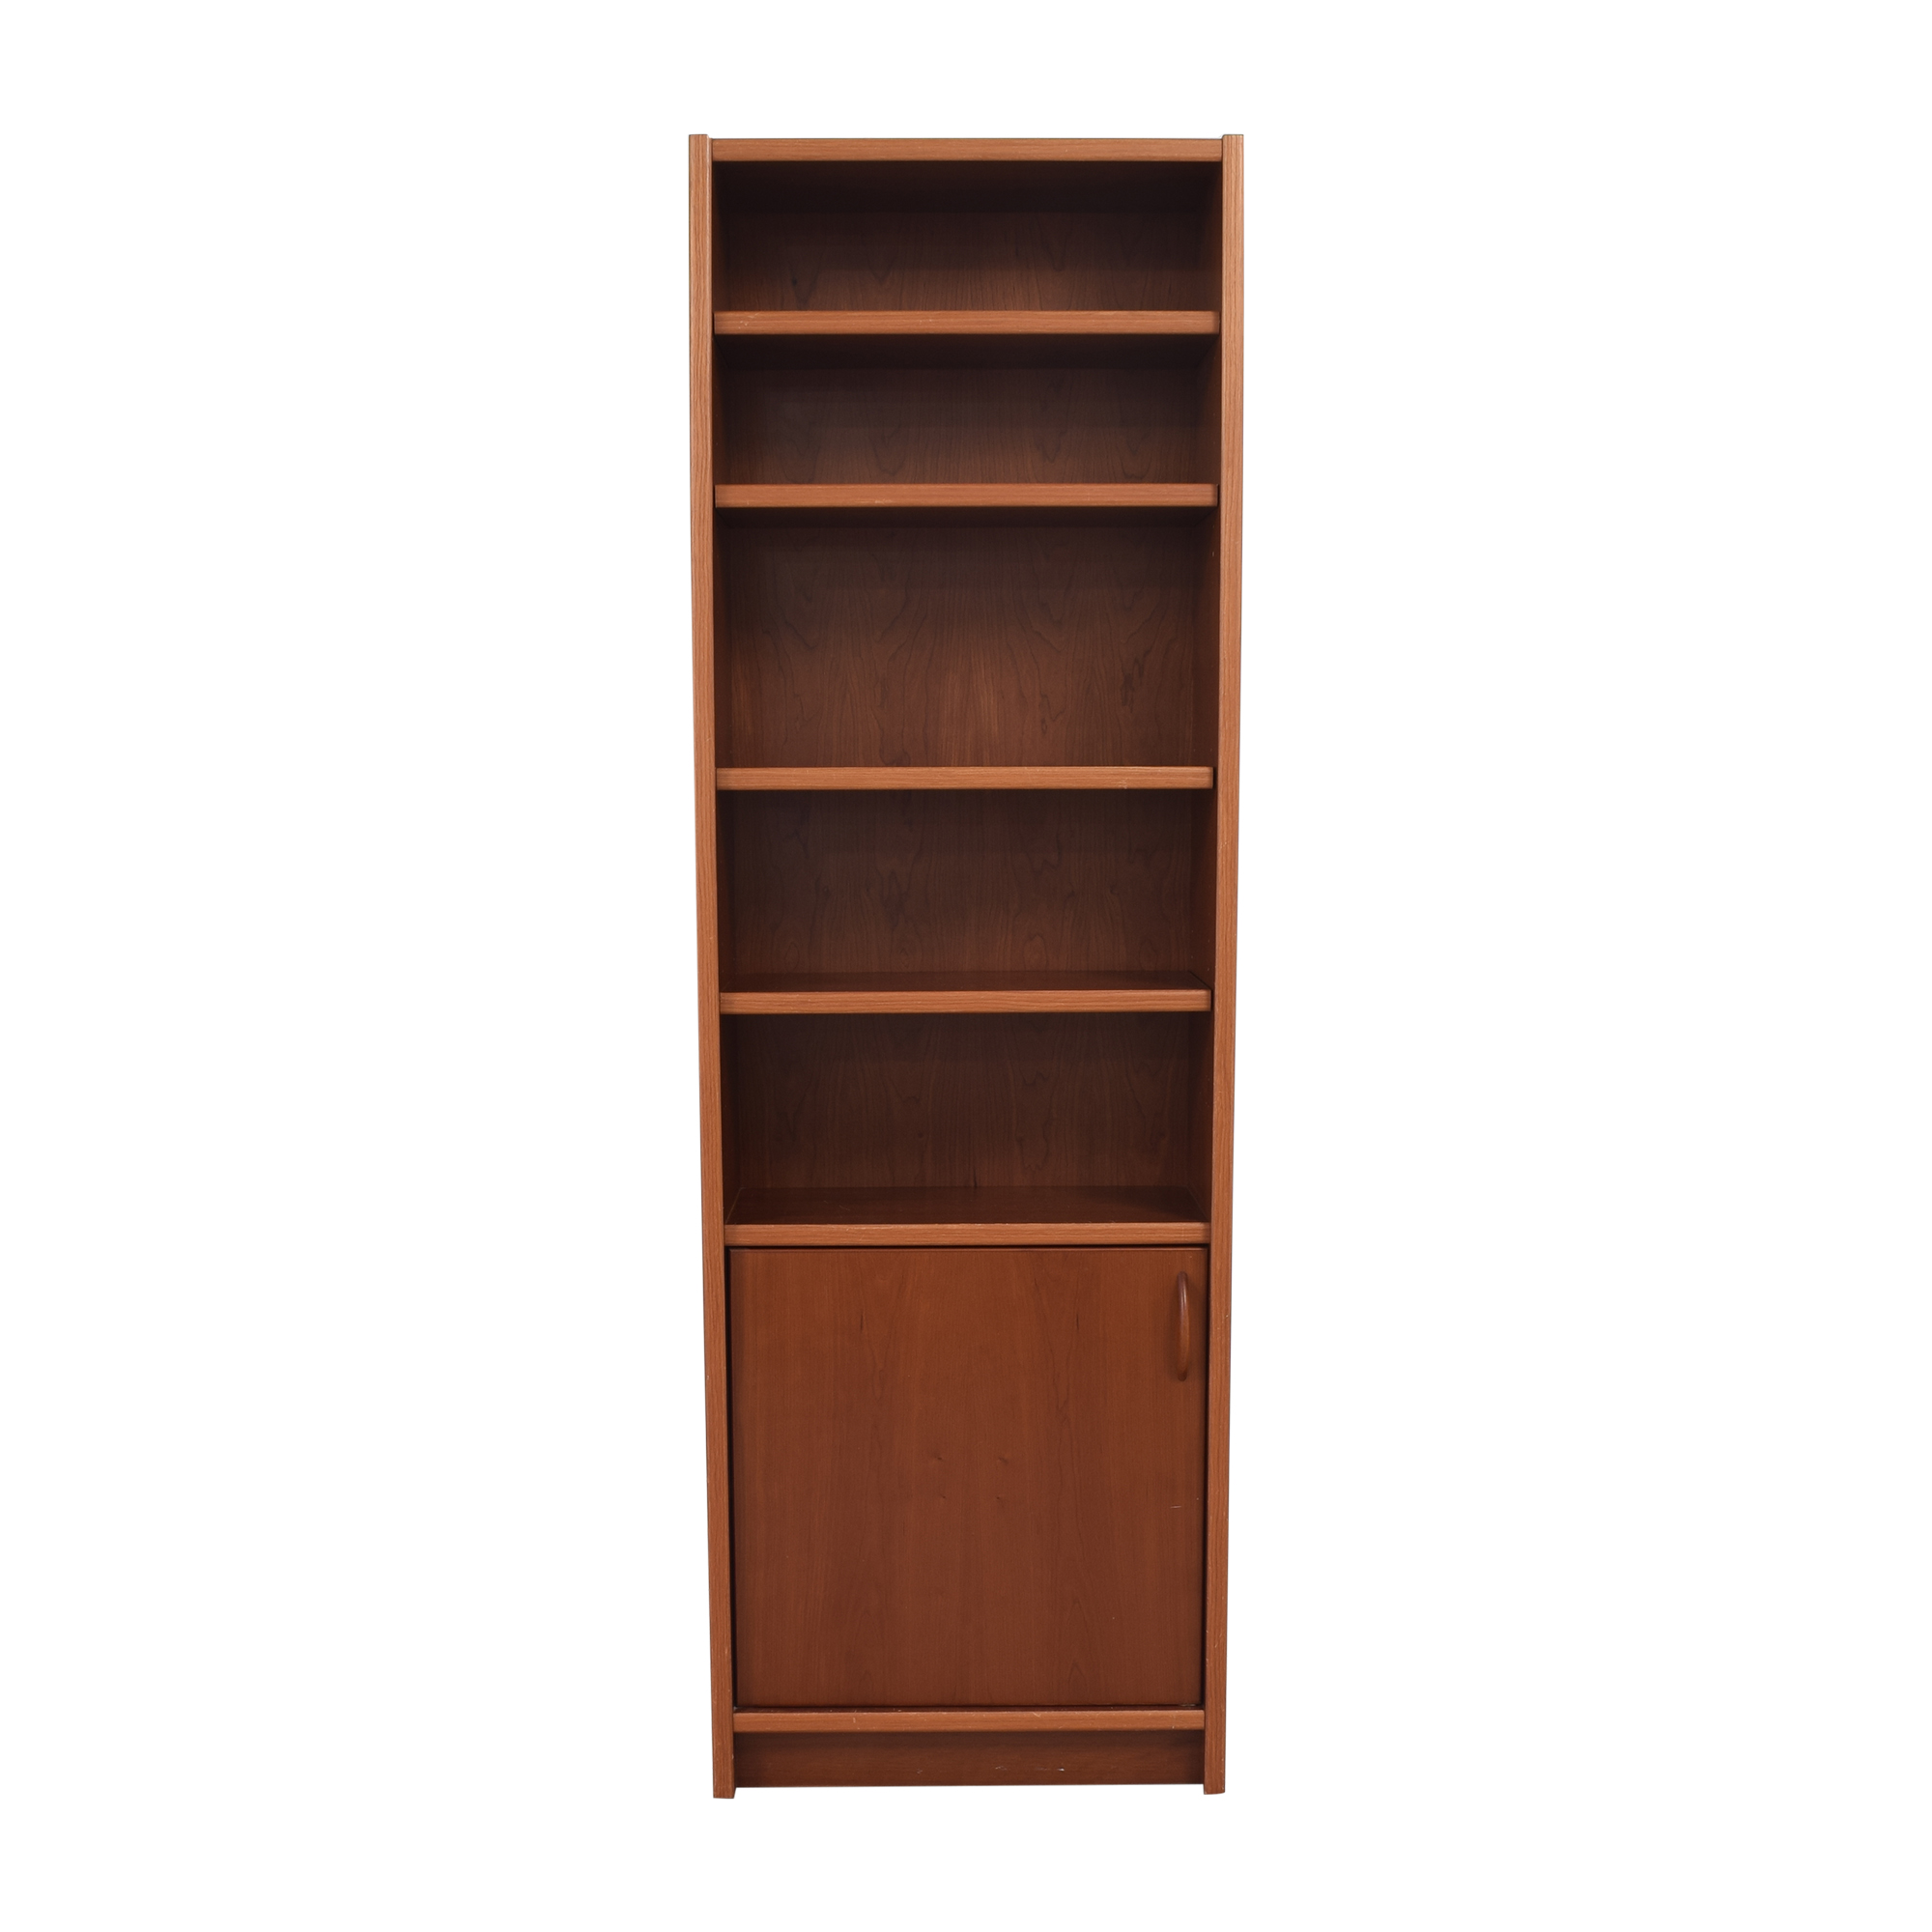 Danish Narrow Bookcase with Cabinet used